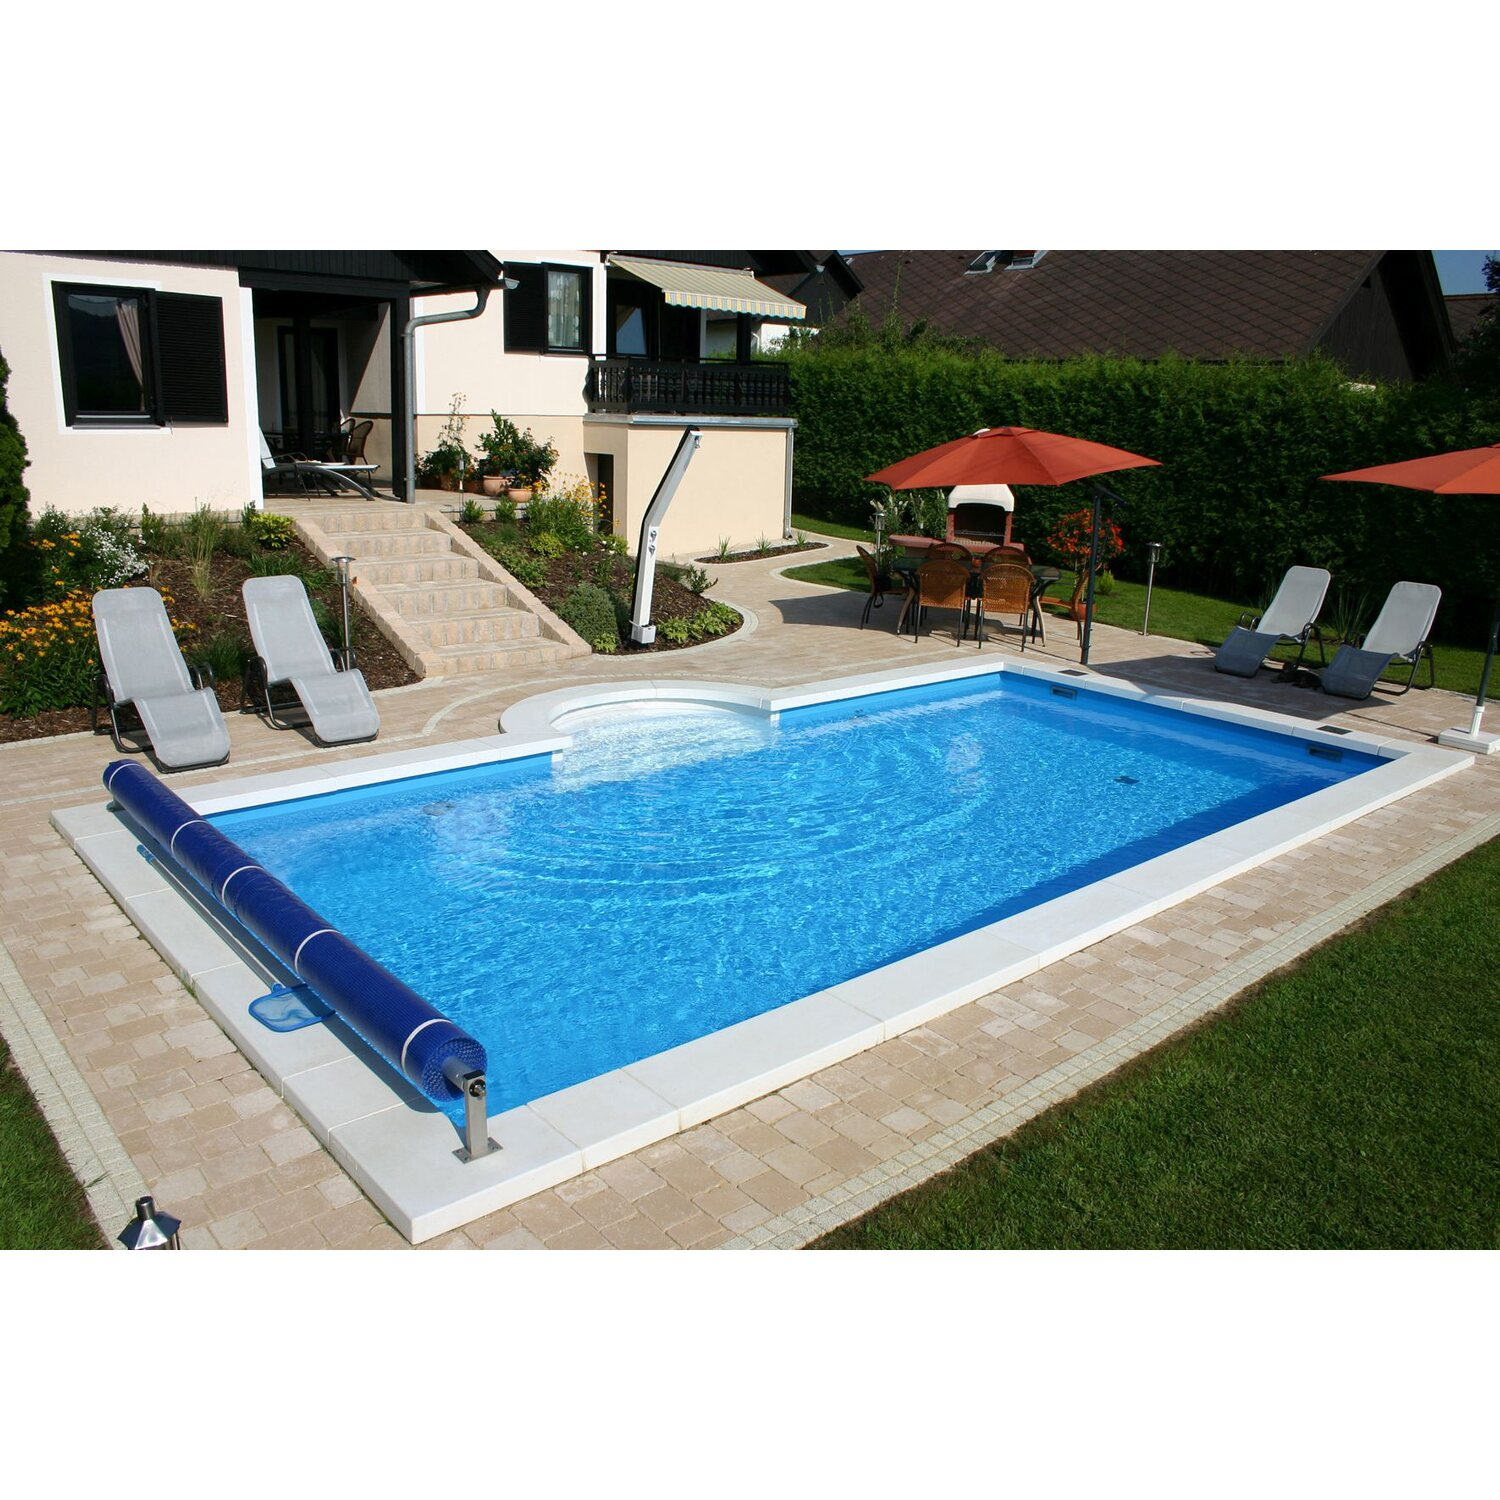 Summer fun styropor pool set lugano einbaubecken 700 cm x for Pool 457x122 mit sandfilteranlage